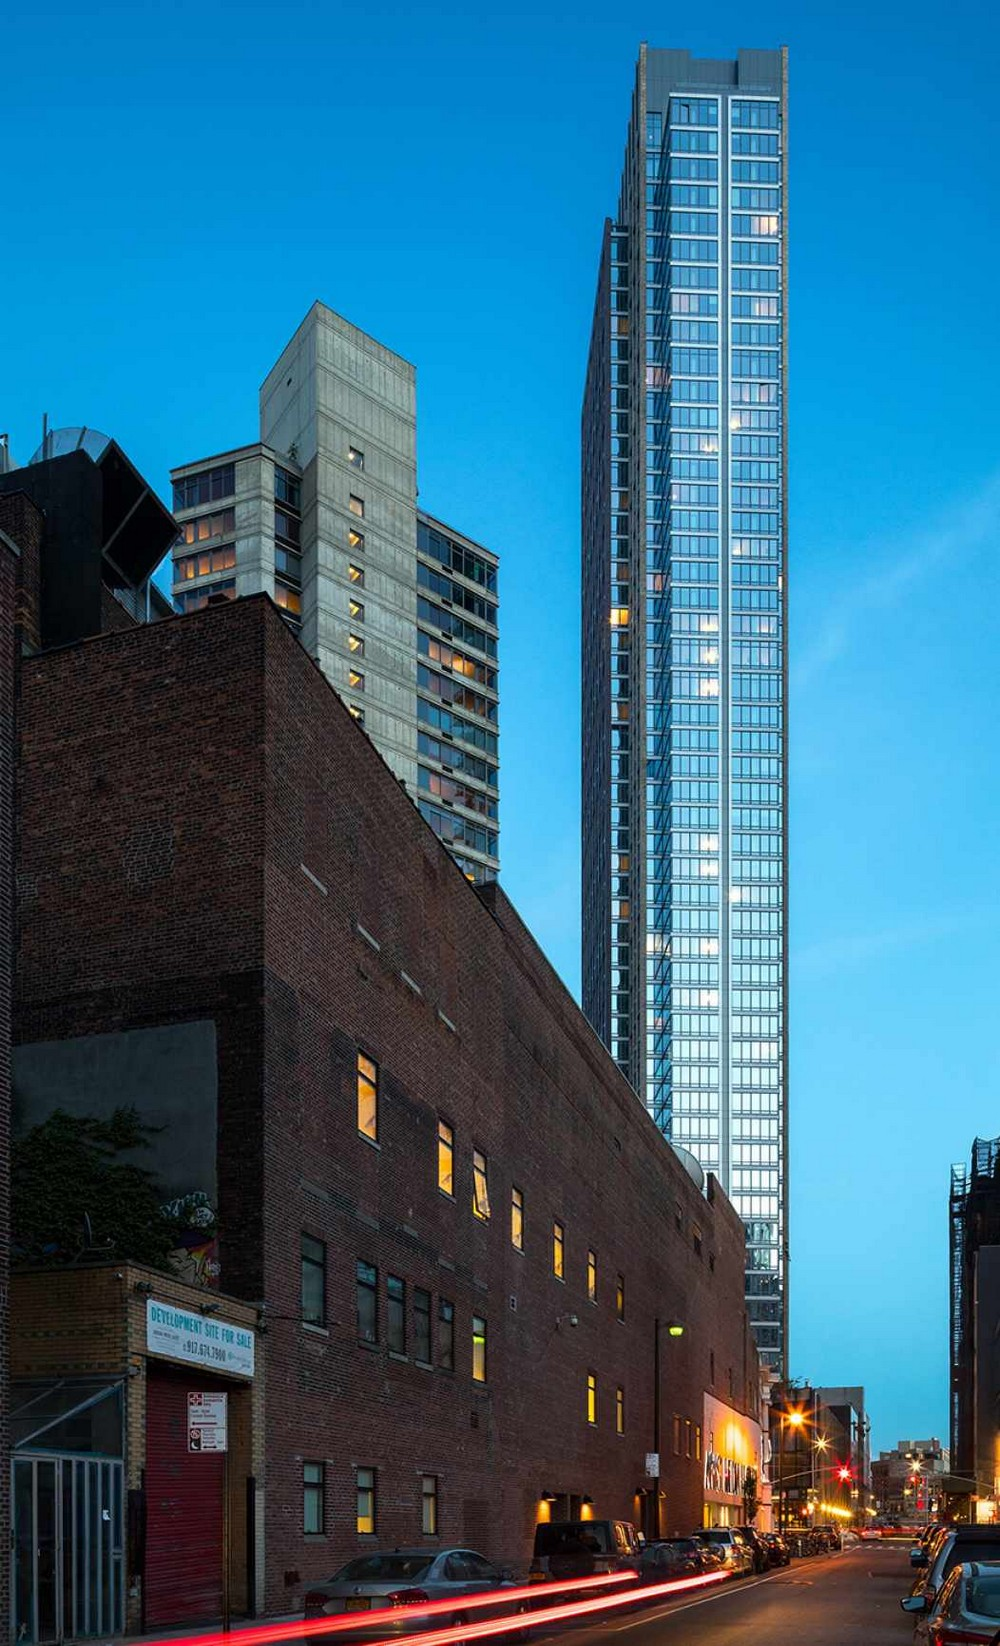 Greenwich Lane, Pierhouse and 1 Hotel Brooklyn Bridge, The Ashland, Tower 28, 21 West End Avenue, FXCollaborative, Rudin Management, Marvel Architects, Toll Brothers, Gotham Organization, Hill West Architects, Whitehall Interiors, Heatherwood Properties, ICRAVE, Dermot Company largest development projects in nyc Top 20 Largest Development Projects In NYC (Part II) 3